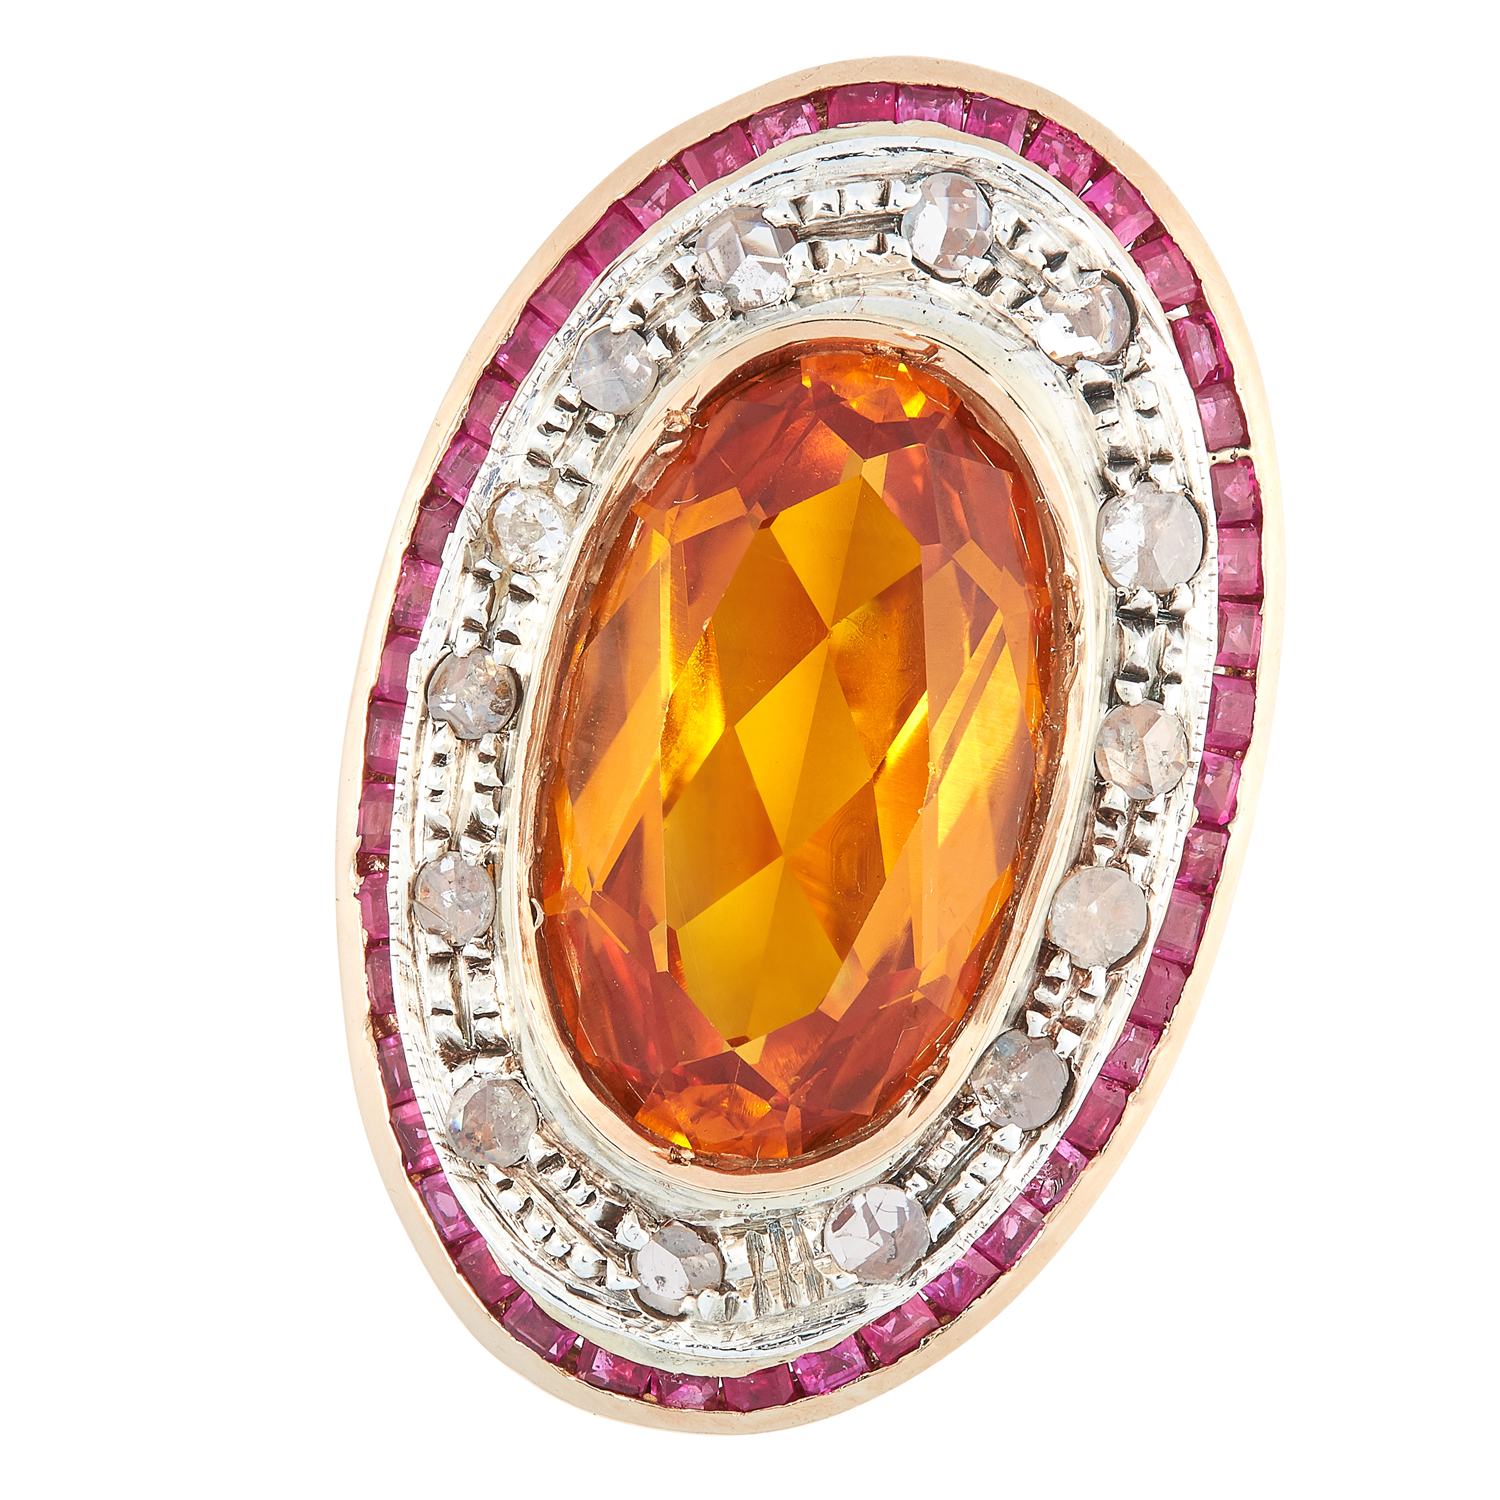 A CITRINE, DIAMOND AND RUBY DRESS RING set with a central oval mixed cut citrine in a halo of rose